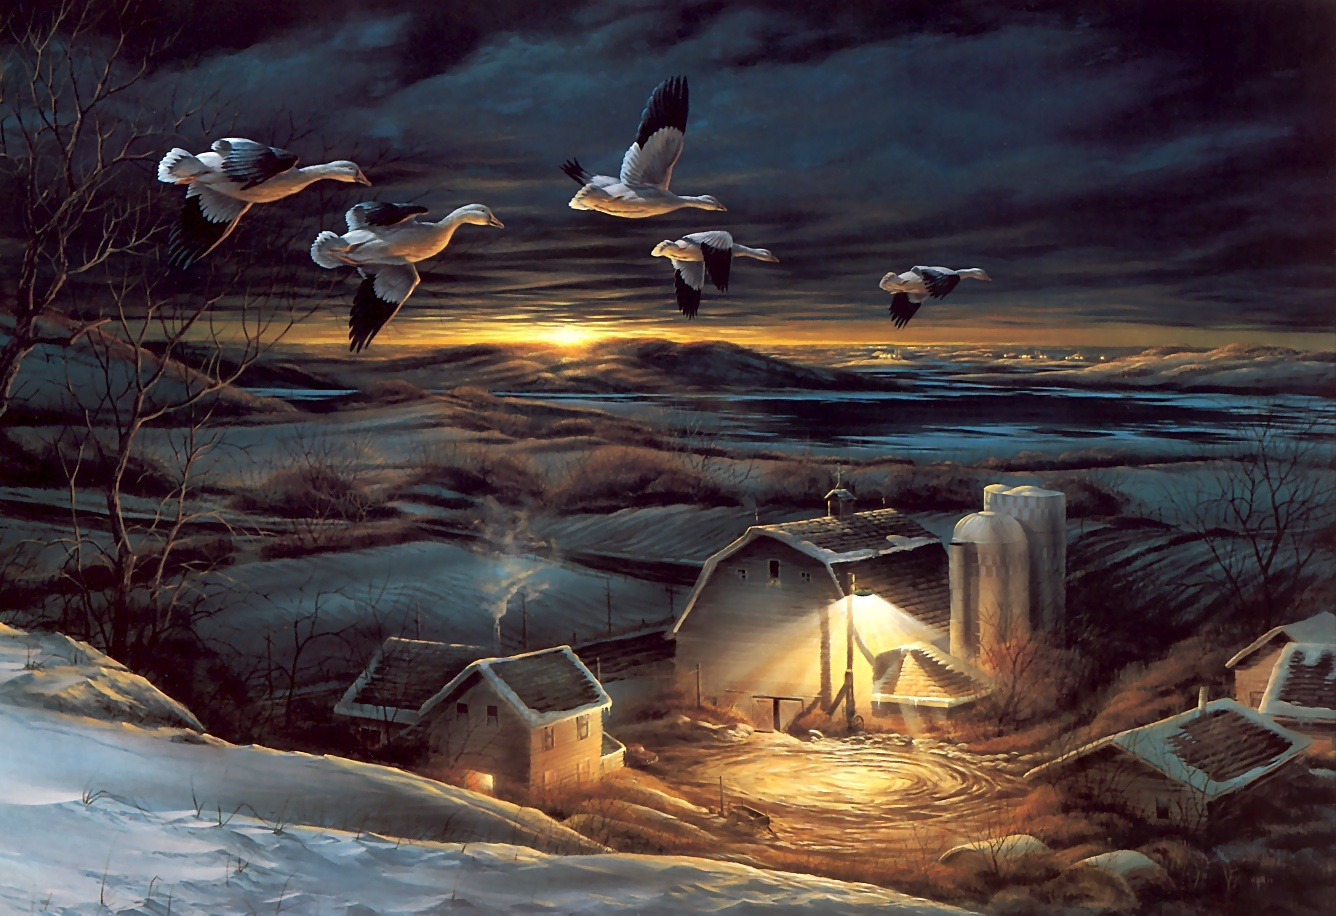 Falling Snow Wallpaper Animated Iphone Geese Flying South Wallpaper And Background Image